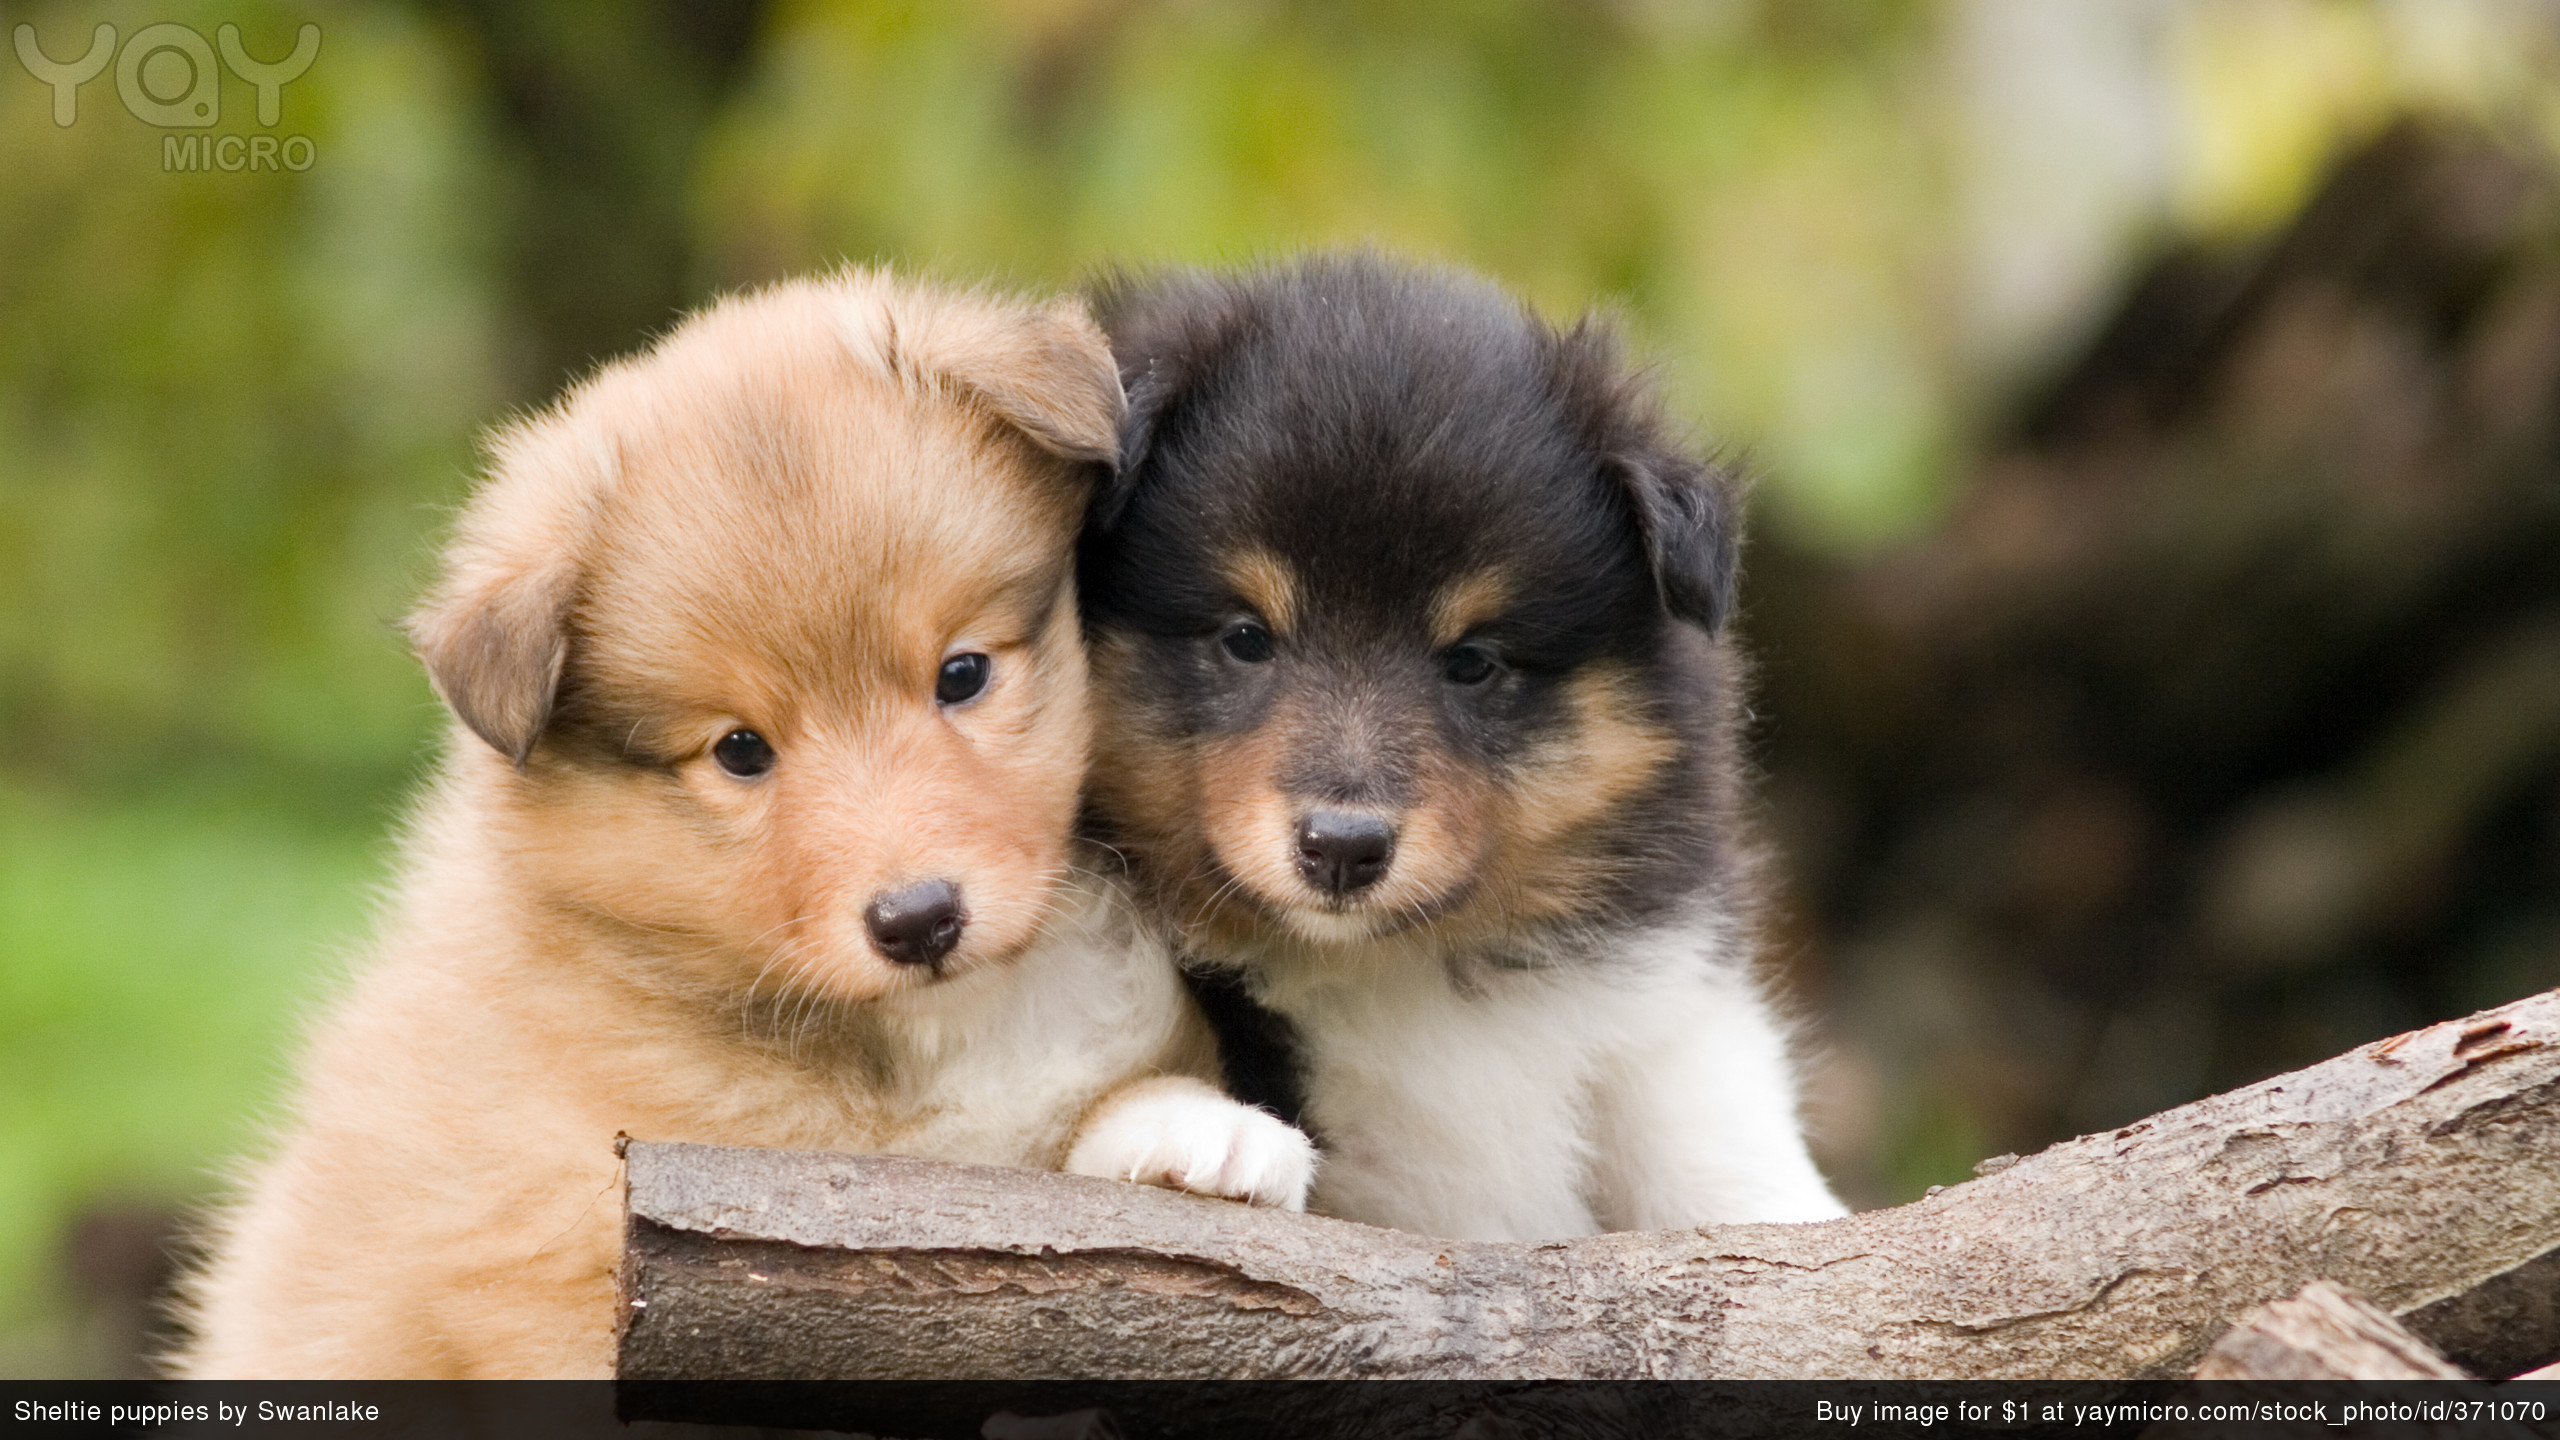 Dog HD Wallpapers Backgrounds Wallpaper | HD Wallpapers | Pinterest | Dog  wallpaper, Wallpaper and Hd wallpaper